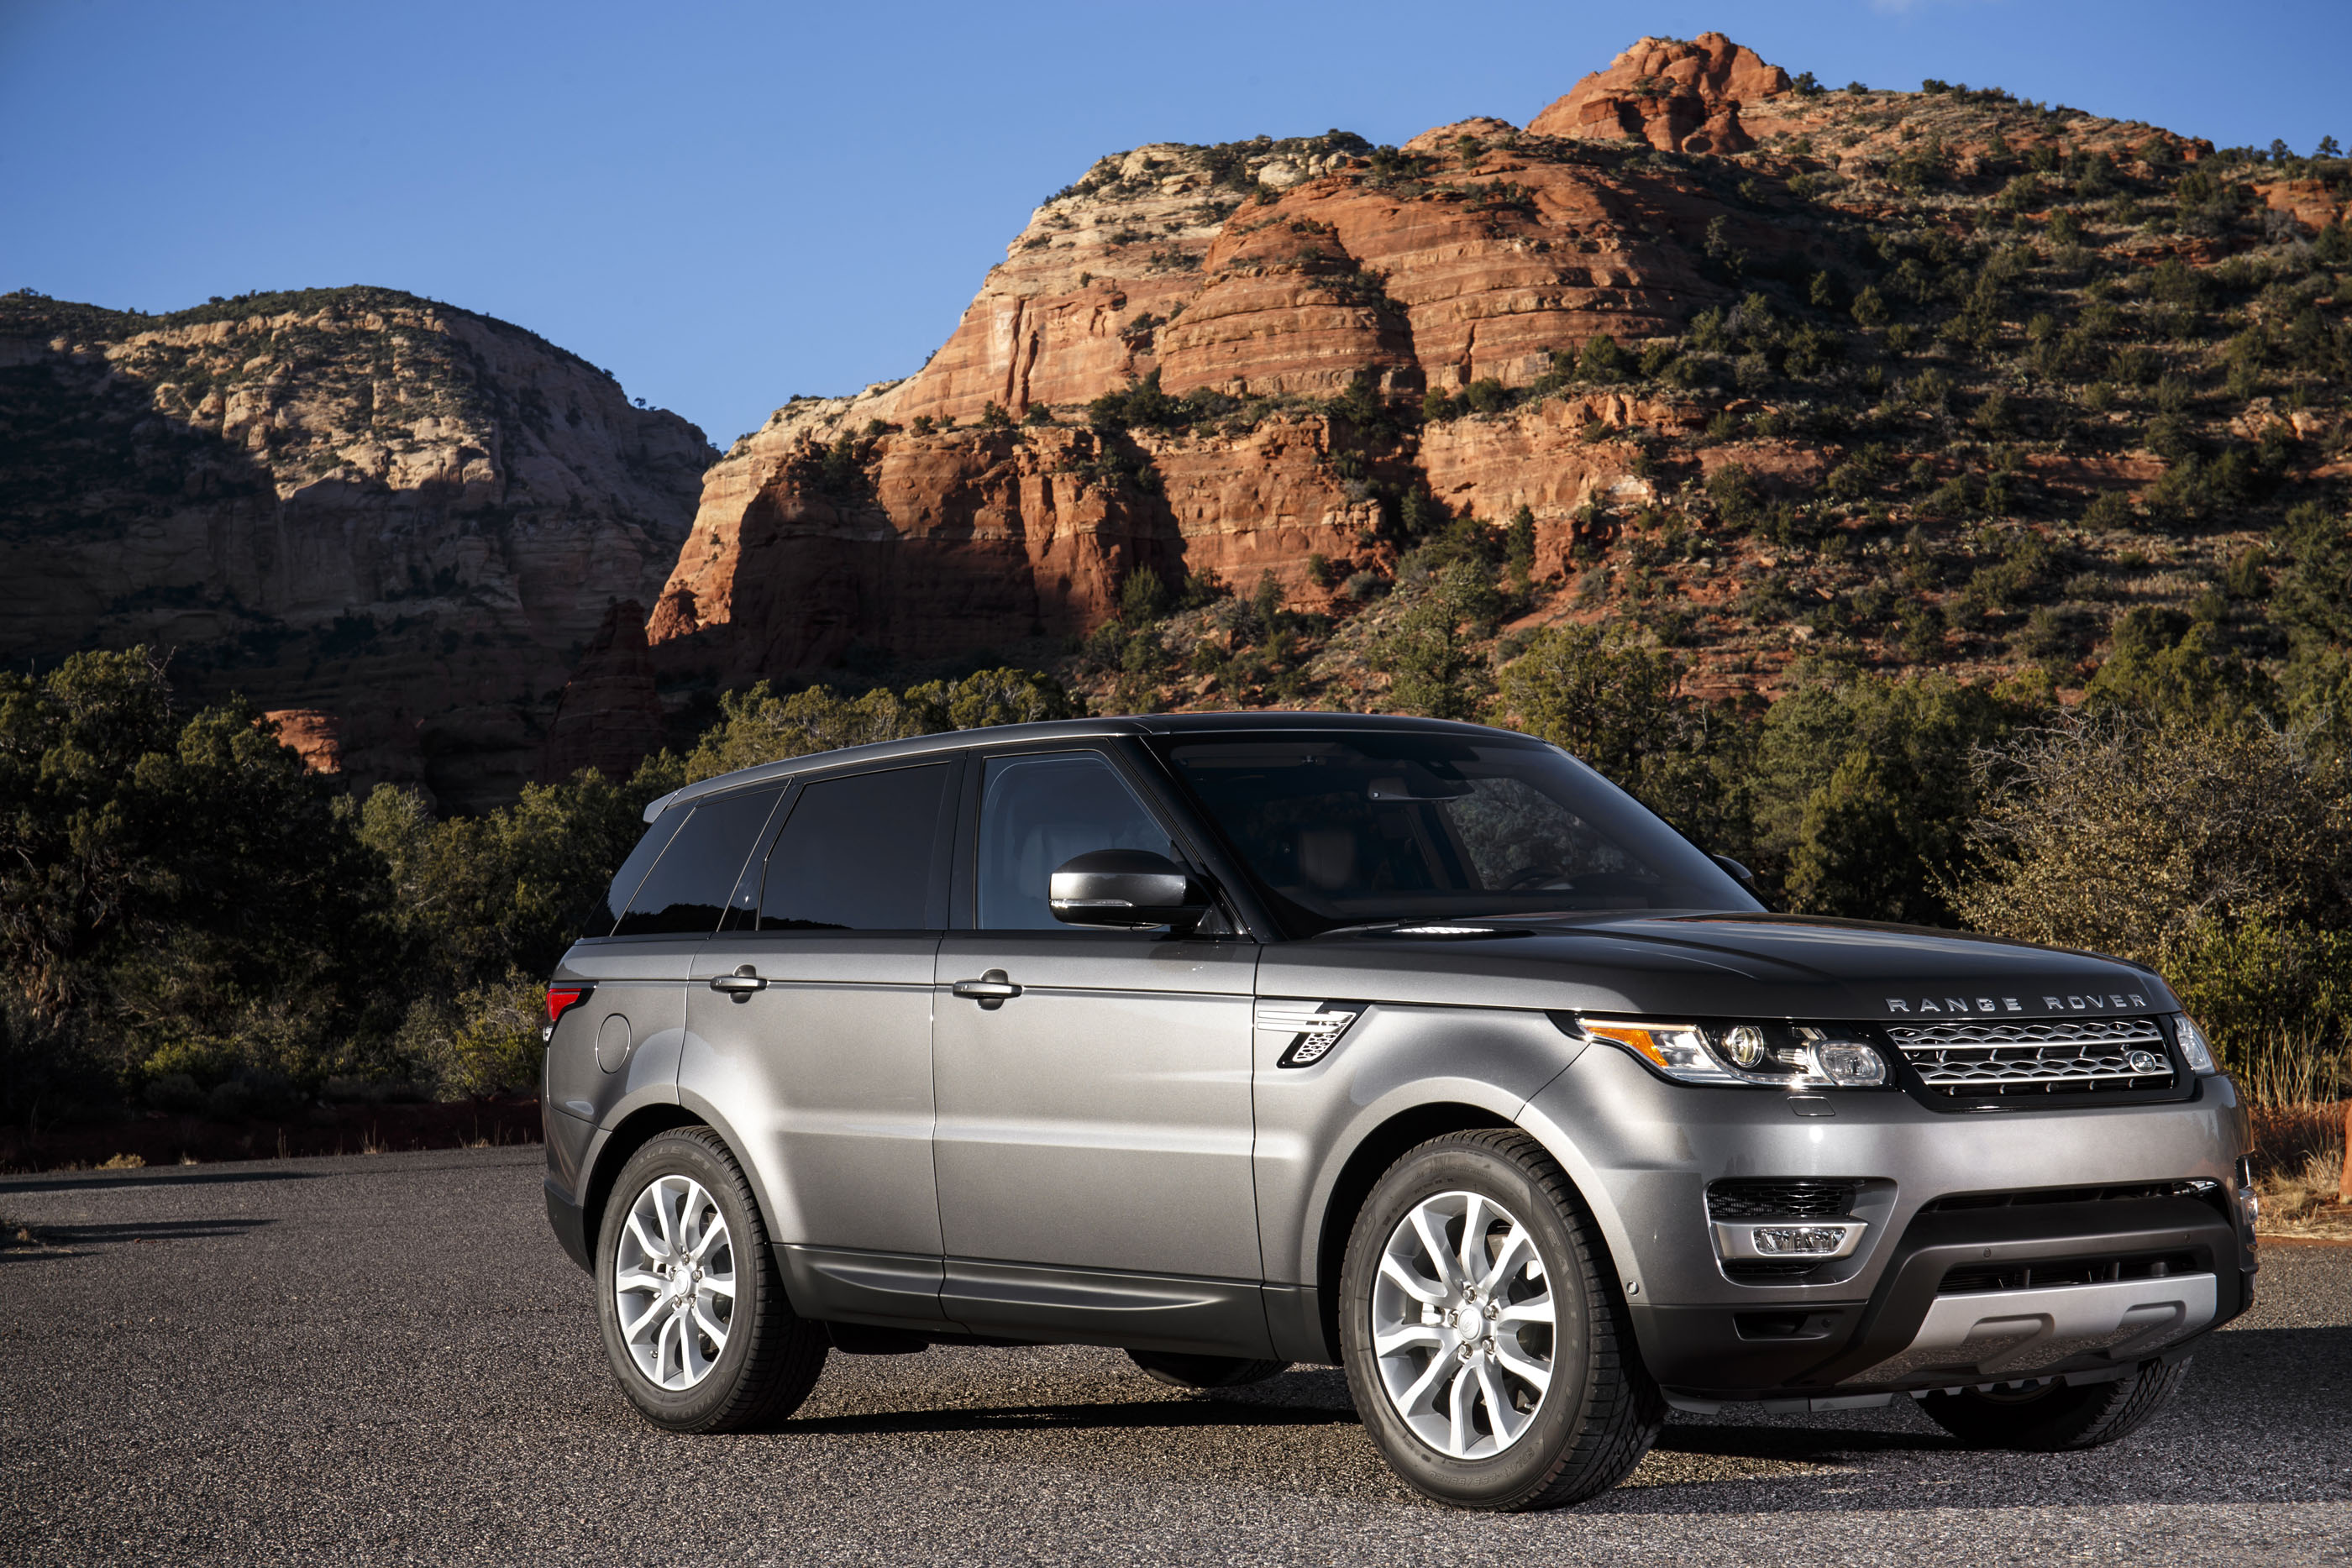 2017 land rover range rover sport review ratings specs prices and photos the car connection. Black Bedroom Furniture Sets. Home Design Ideas